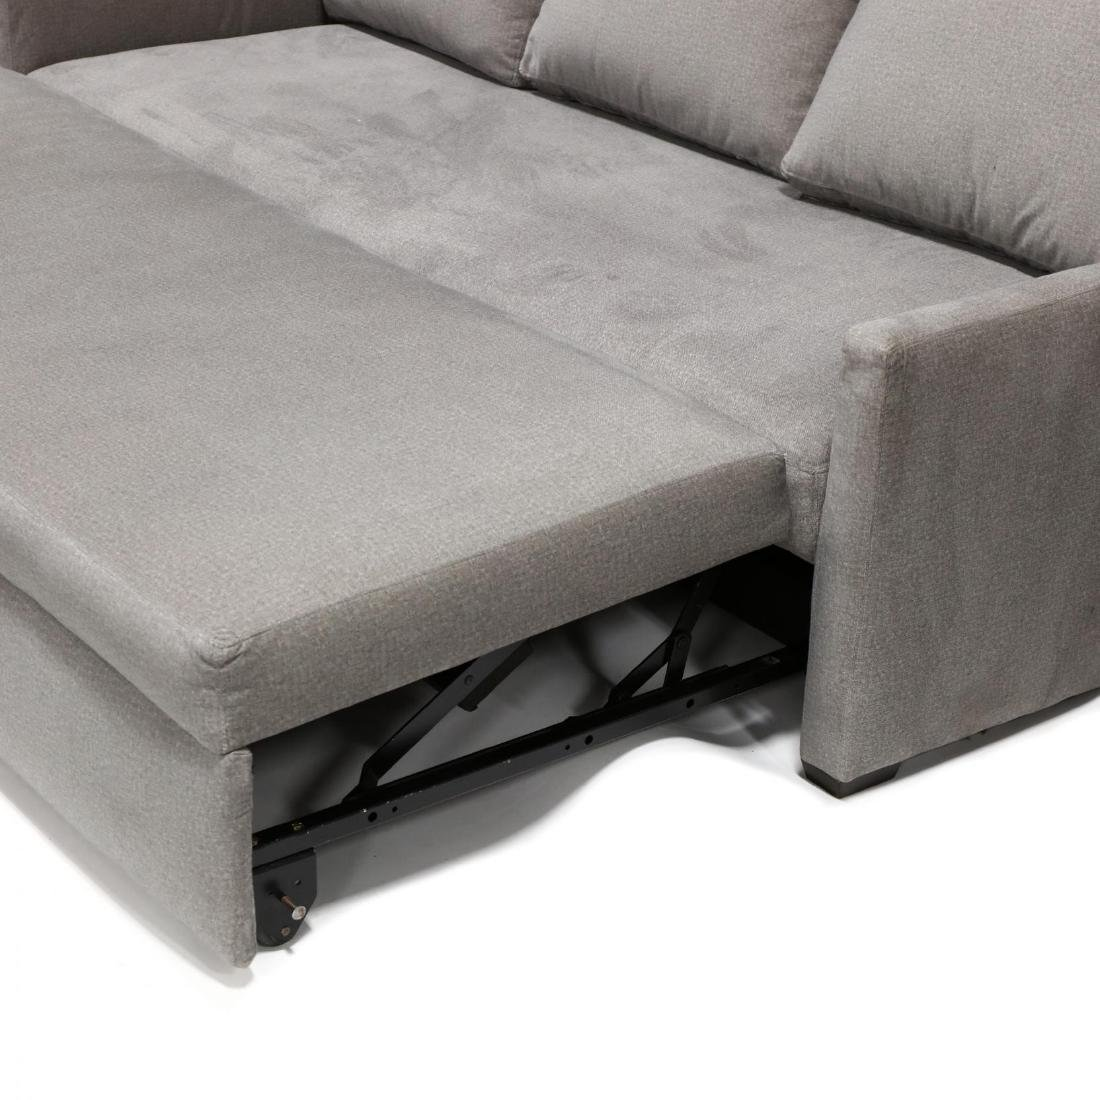 Lee, Contemporary Upholstered Sleeper Sofa - 4